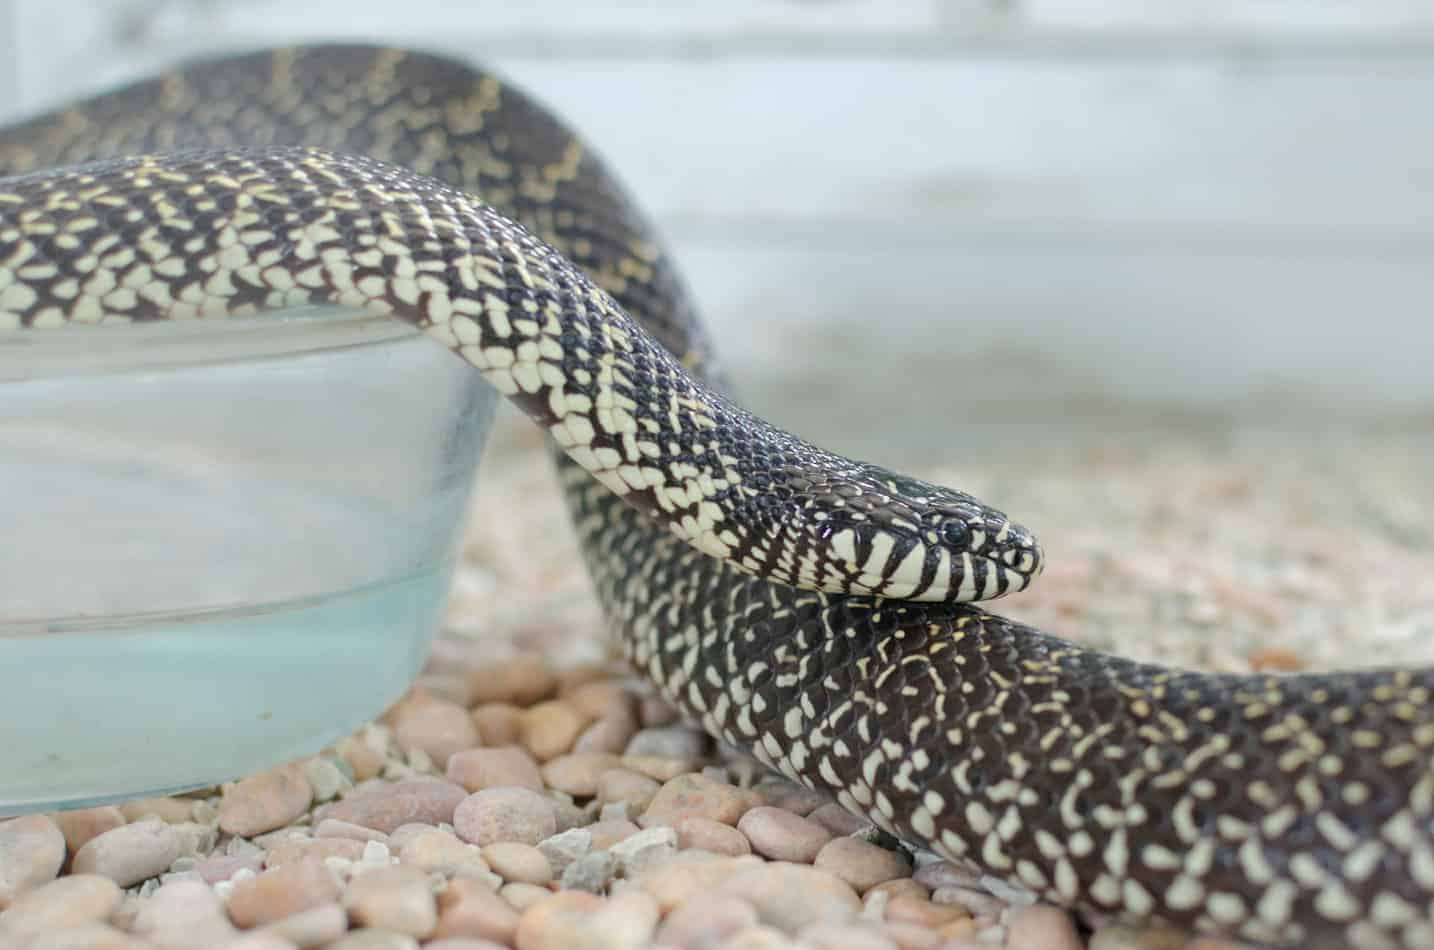 Can King Snakes Cohabitate?